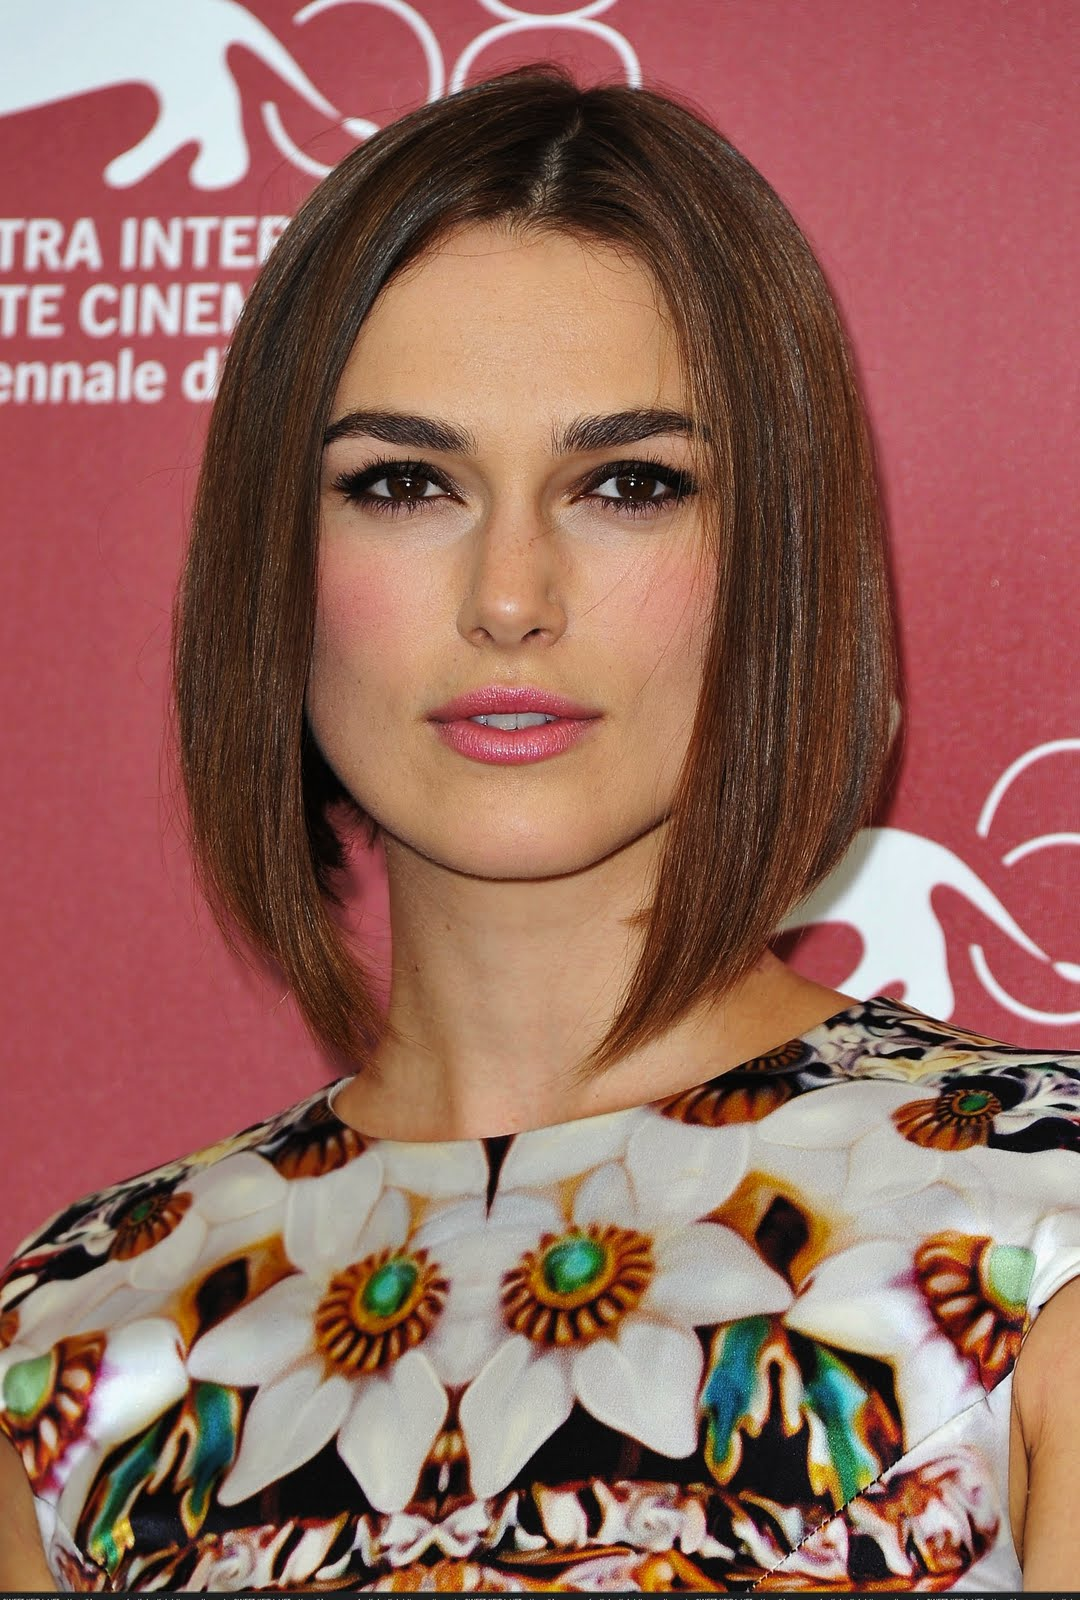 c555cee6272 Keira looked beautiful at the photocall, she showed us her new sleek bob,  it looks fantastic on her! Her make up consisted of Keira's usual smoky eye  to ...